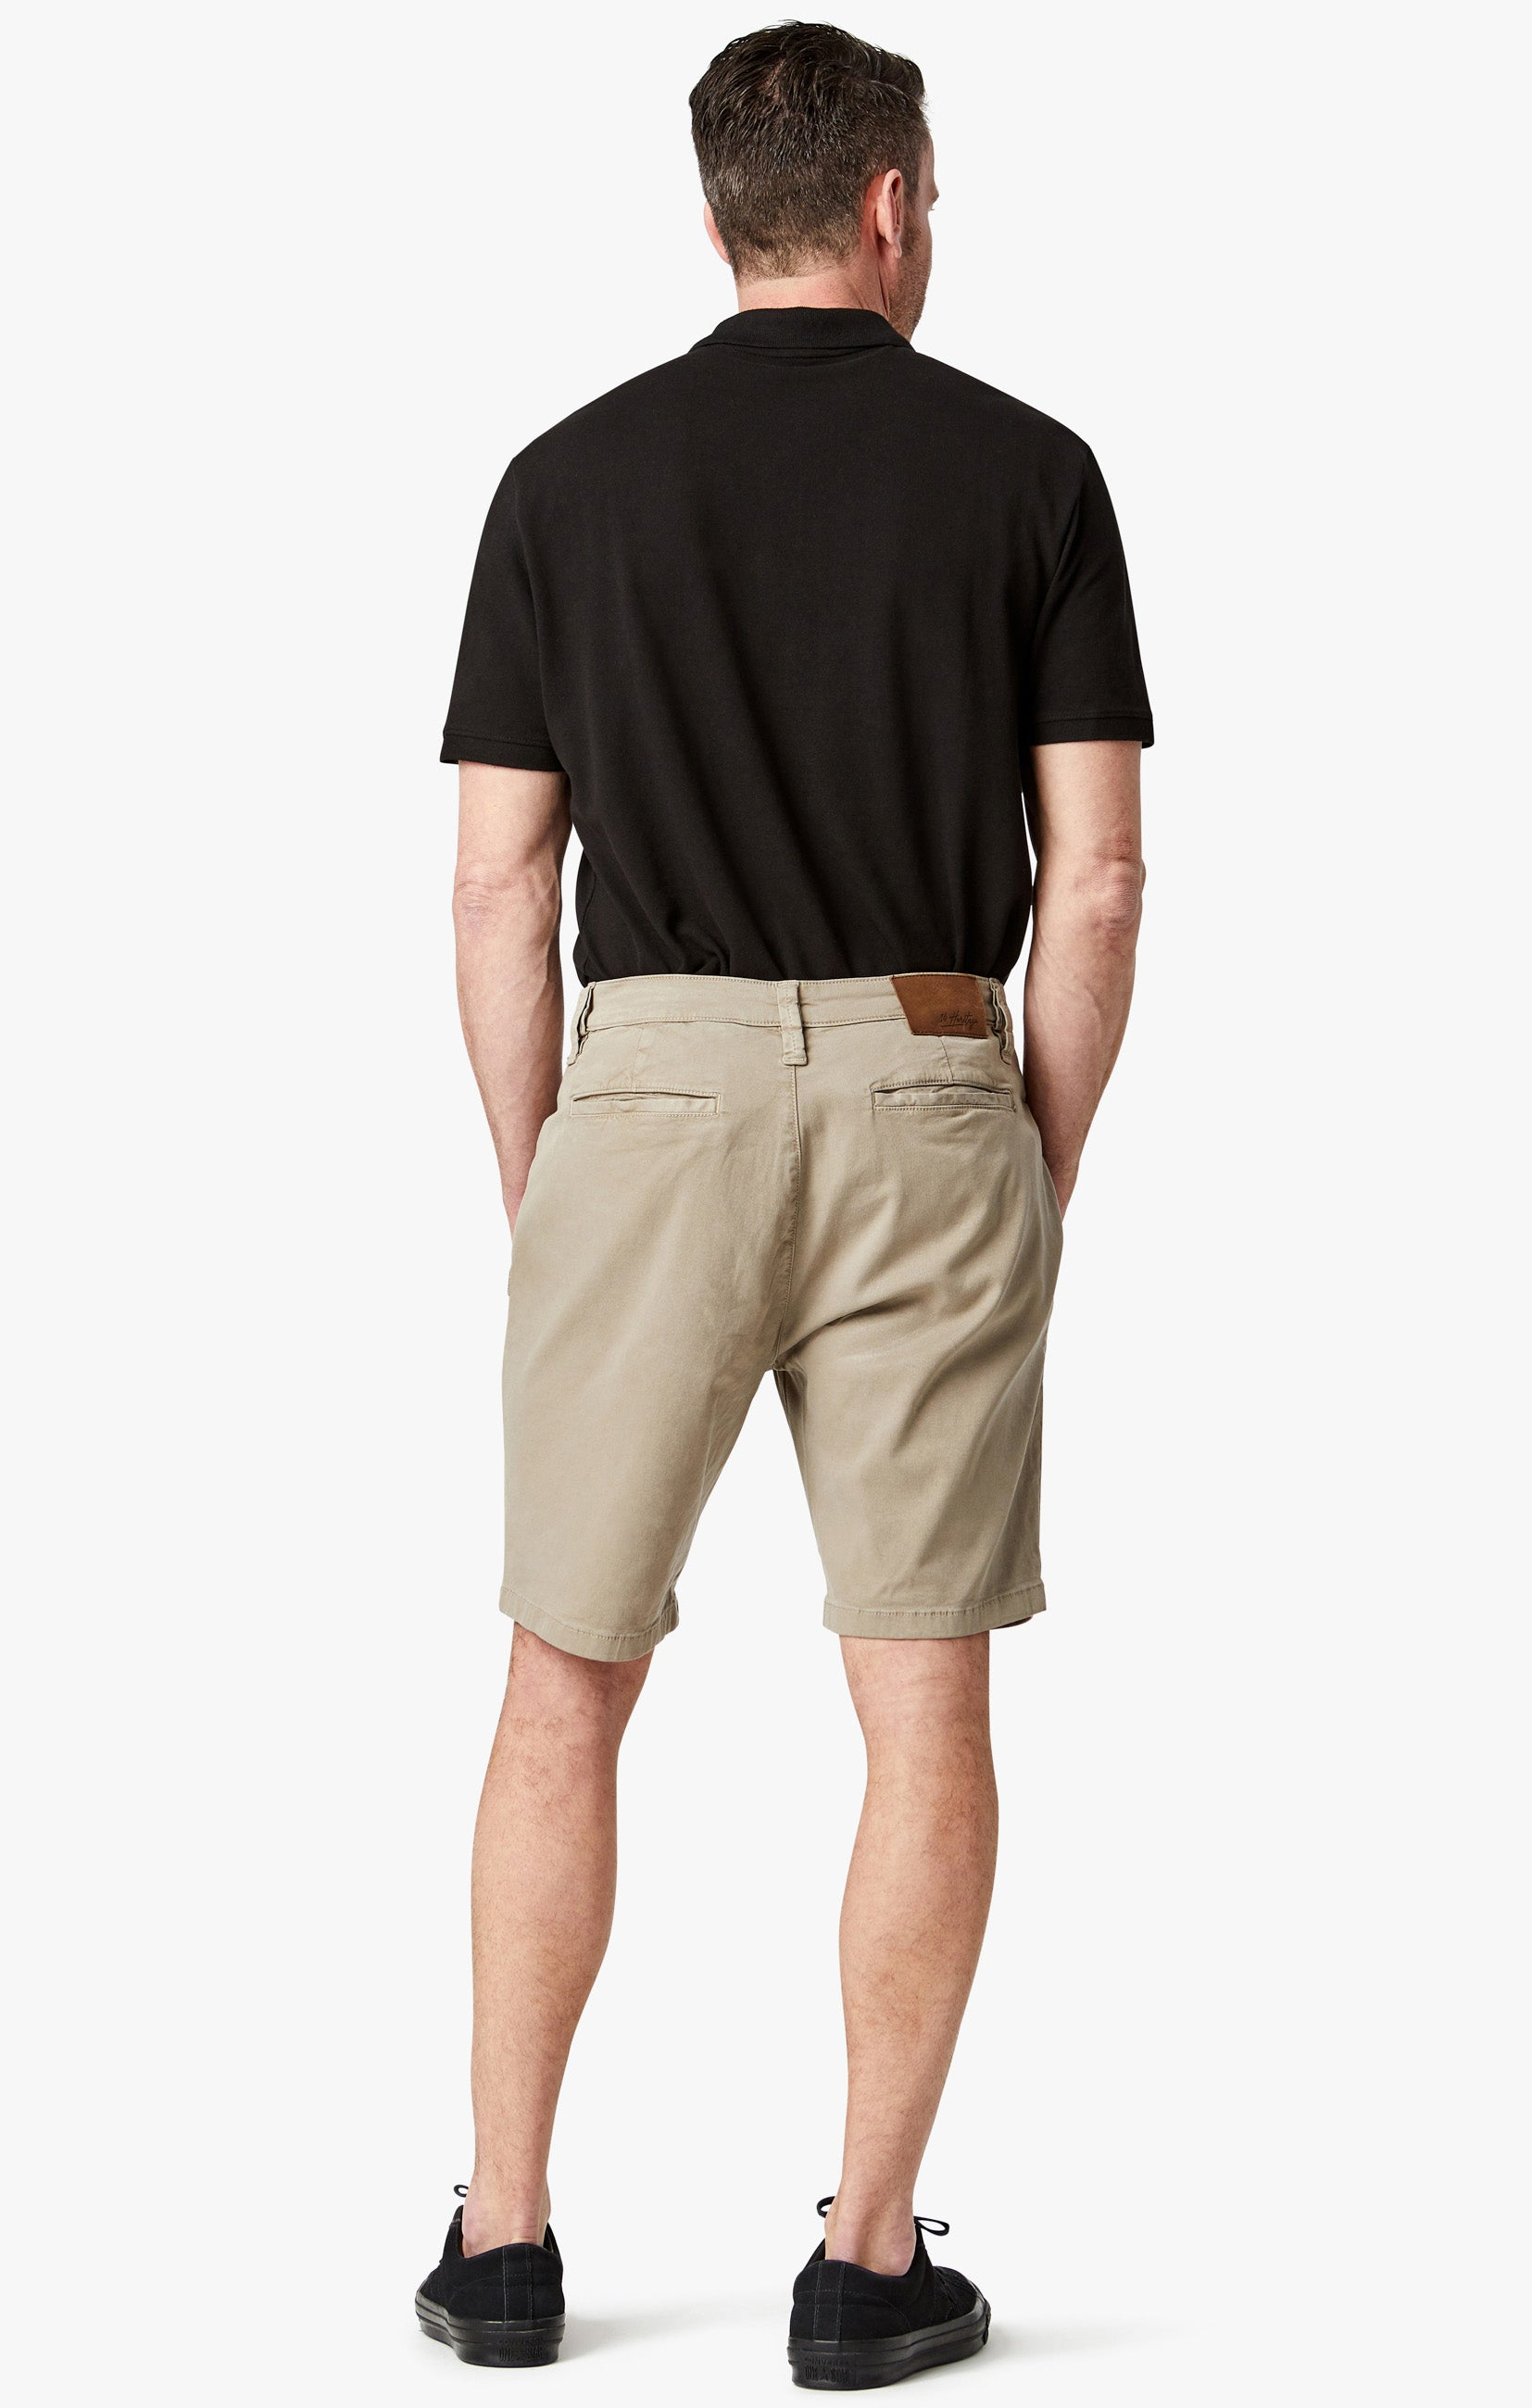 Nevada Shorts In Mushroom Soft Touch Image 3